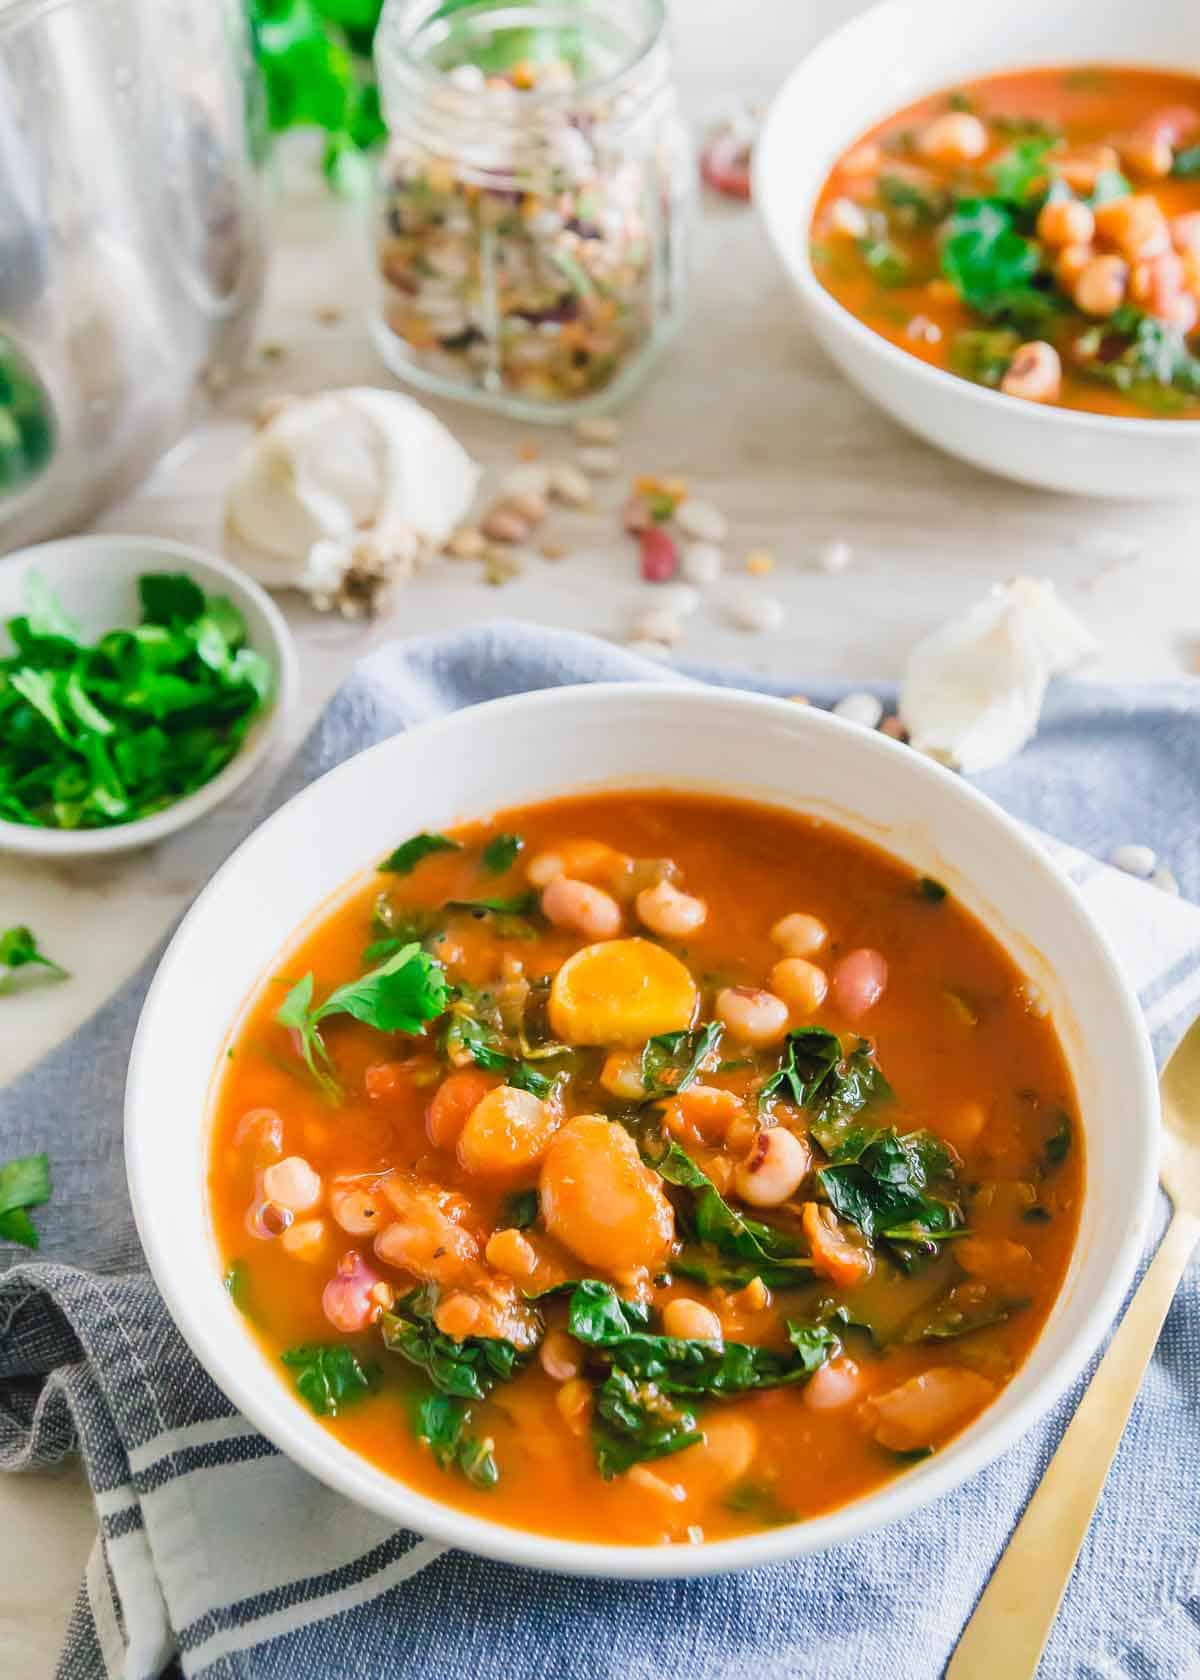 This Instant Pot bean soup recipe uses a 13 bean and lentil blend with a hearty tomato base for a cozy vegan meal. Tuscan kale leaves are stirred in at the end for added color and nutrition.